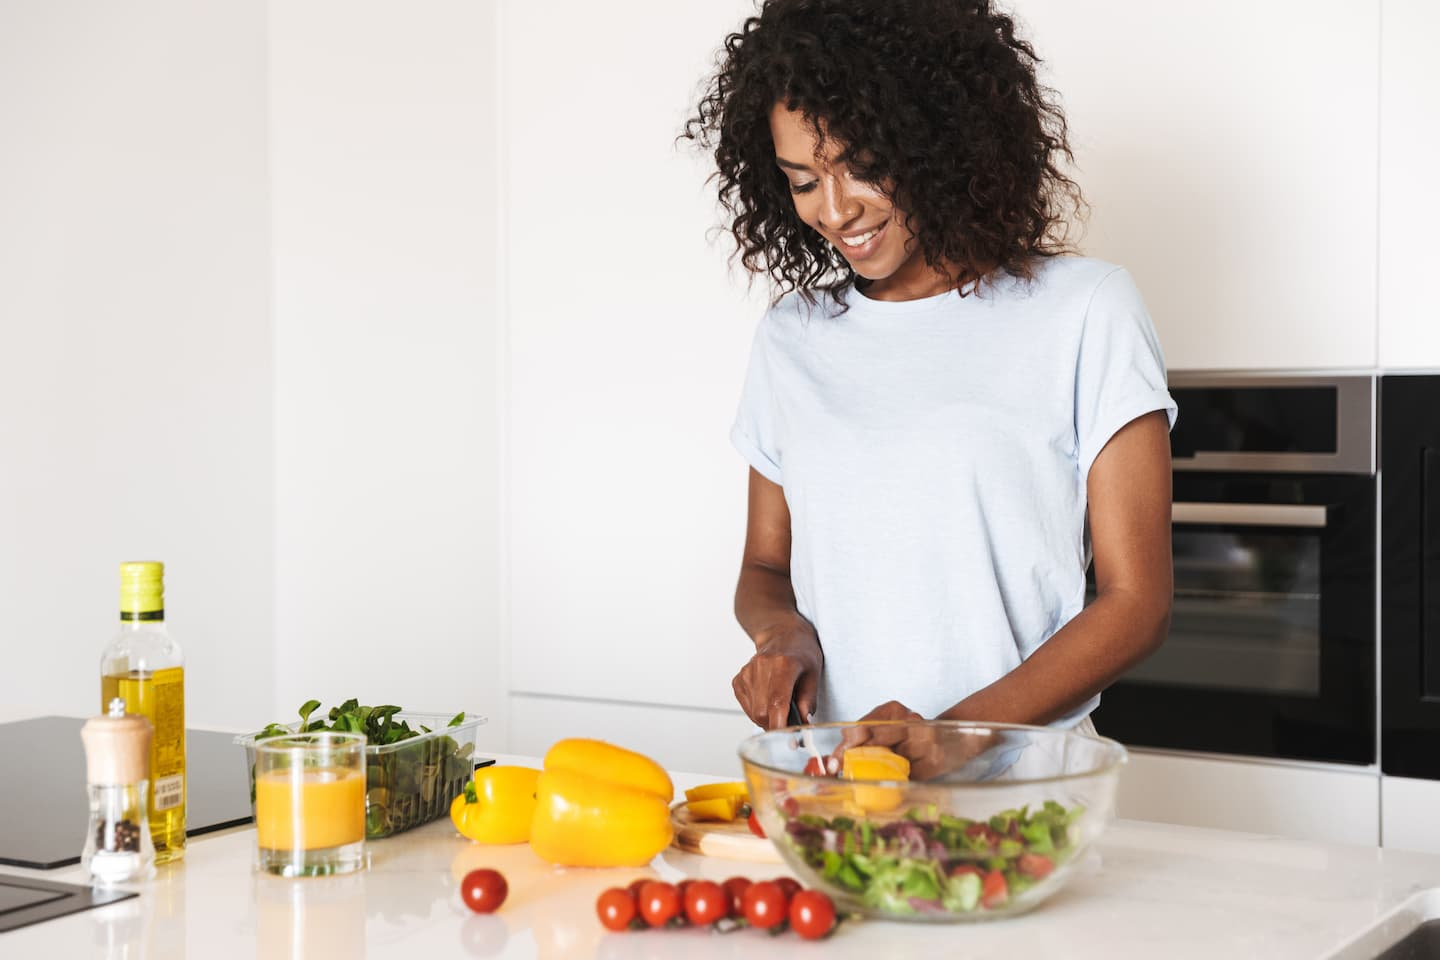 woman cutting up vegetable in a home kitchen